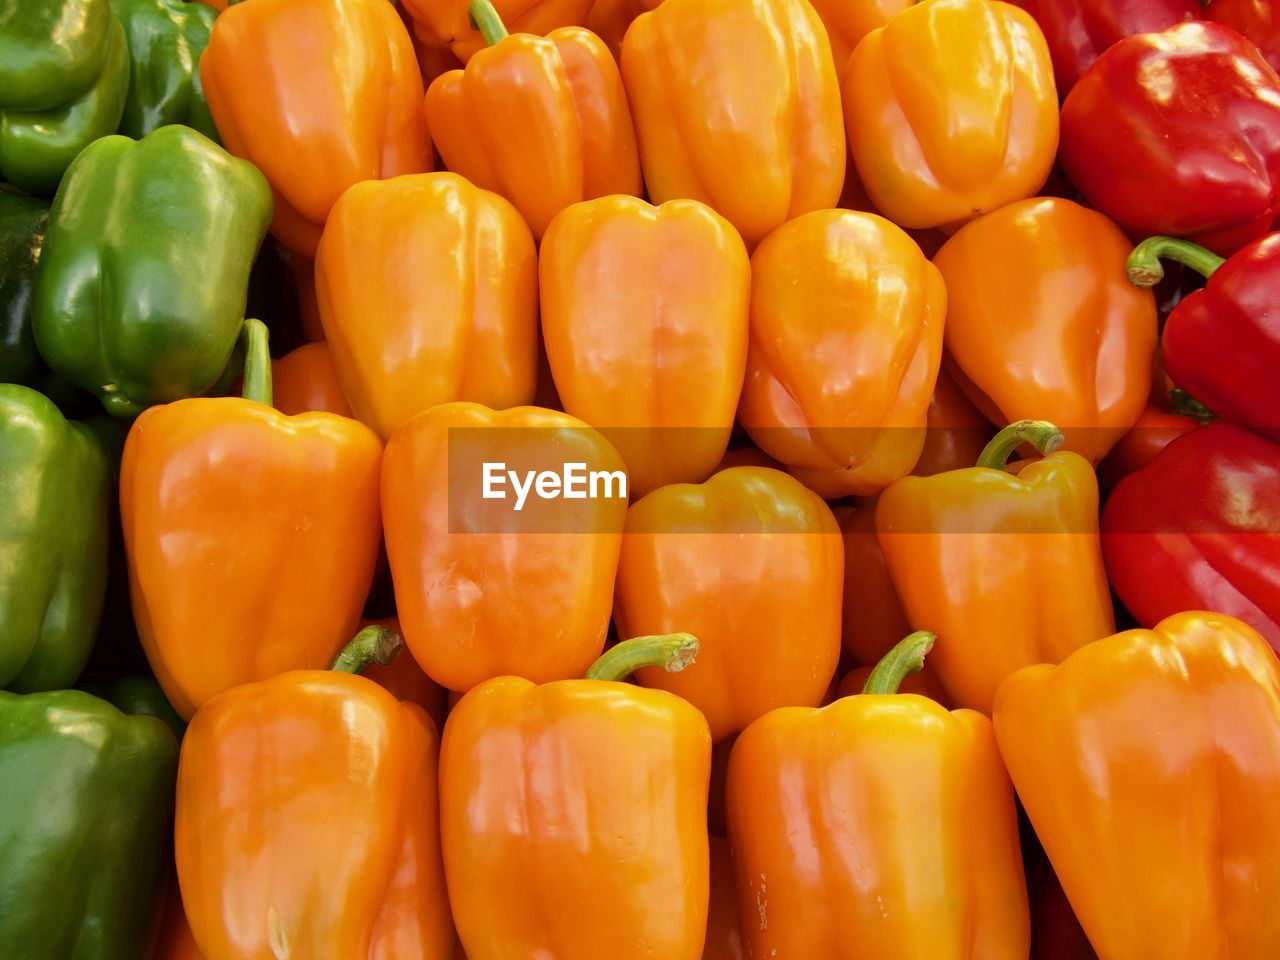 vegetable, food and drink, pepper, food, freshness, bell pepper, large group of objects, backgrounds, market, full frame, for sale, wellbeing, retail, healthy eating, still life, abundance, yellow, yellow bell pepper, market stall, no people, retail display